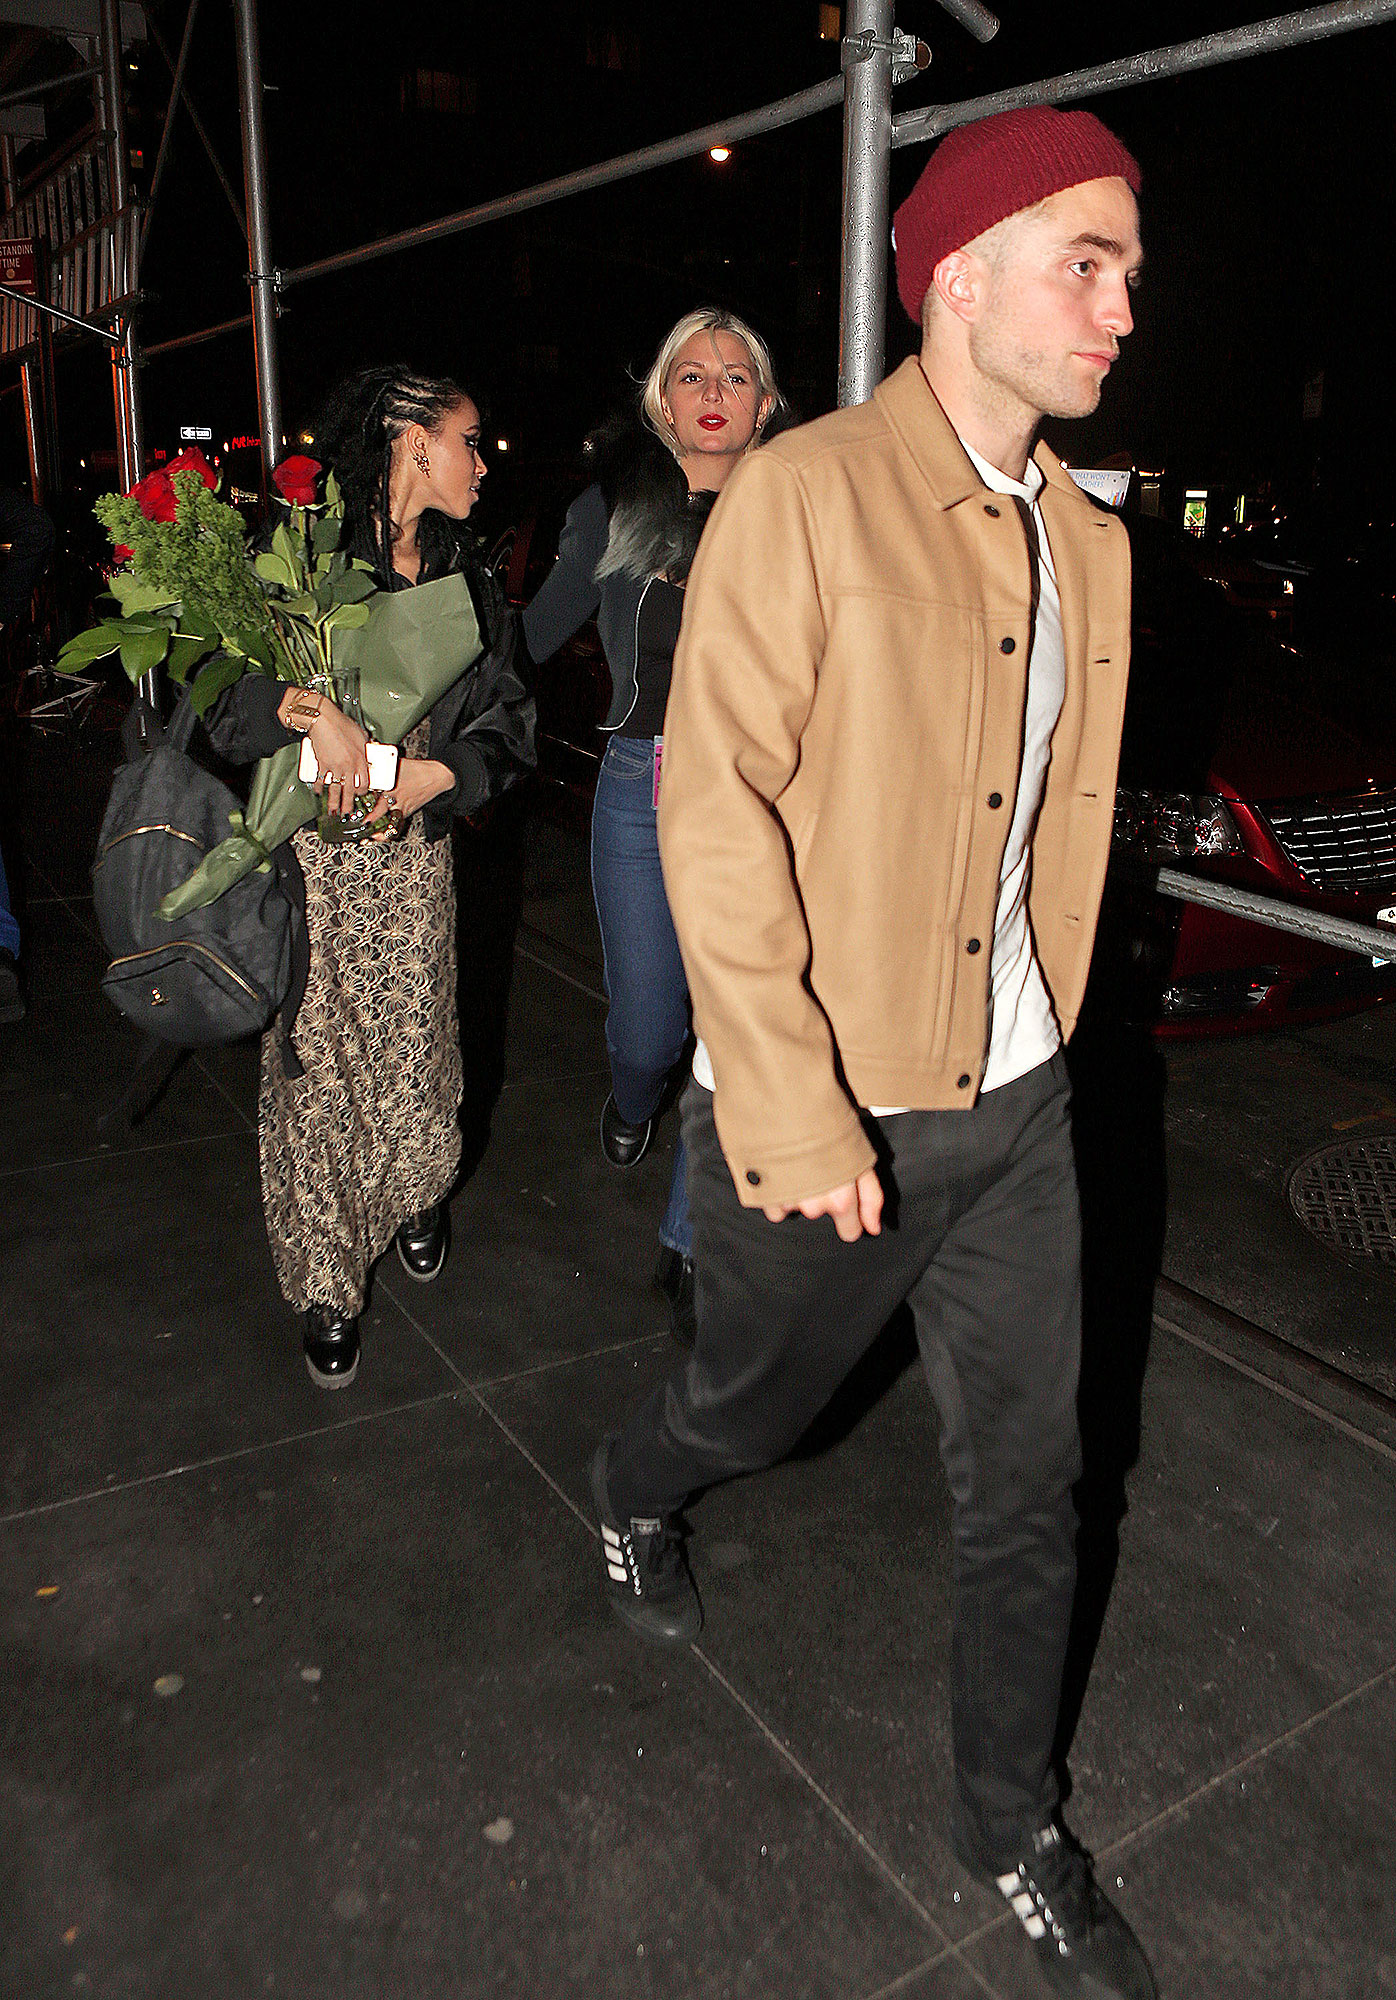 EXCLUSIVE: FKA Twigs is given a dozen beautiful roses from boyfriend Robert Pattinson after her first sold out NYC concert as they make their way to the afterparty